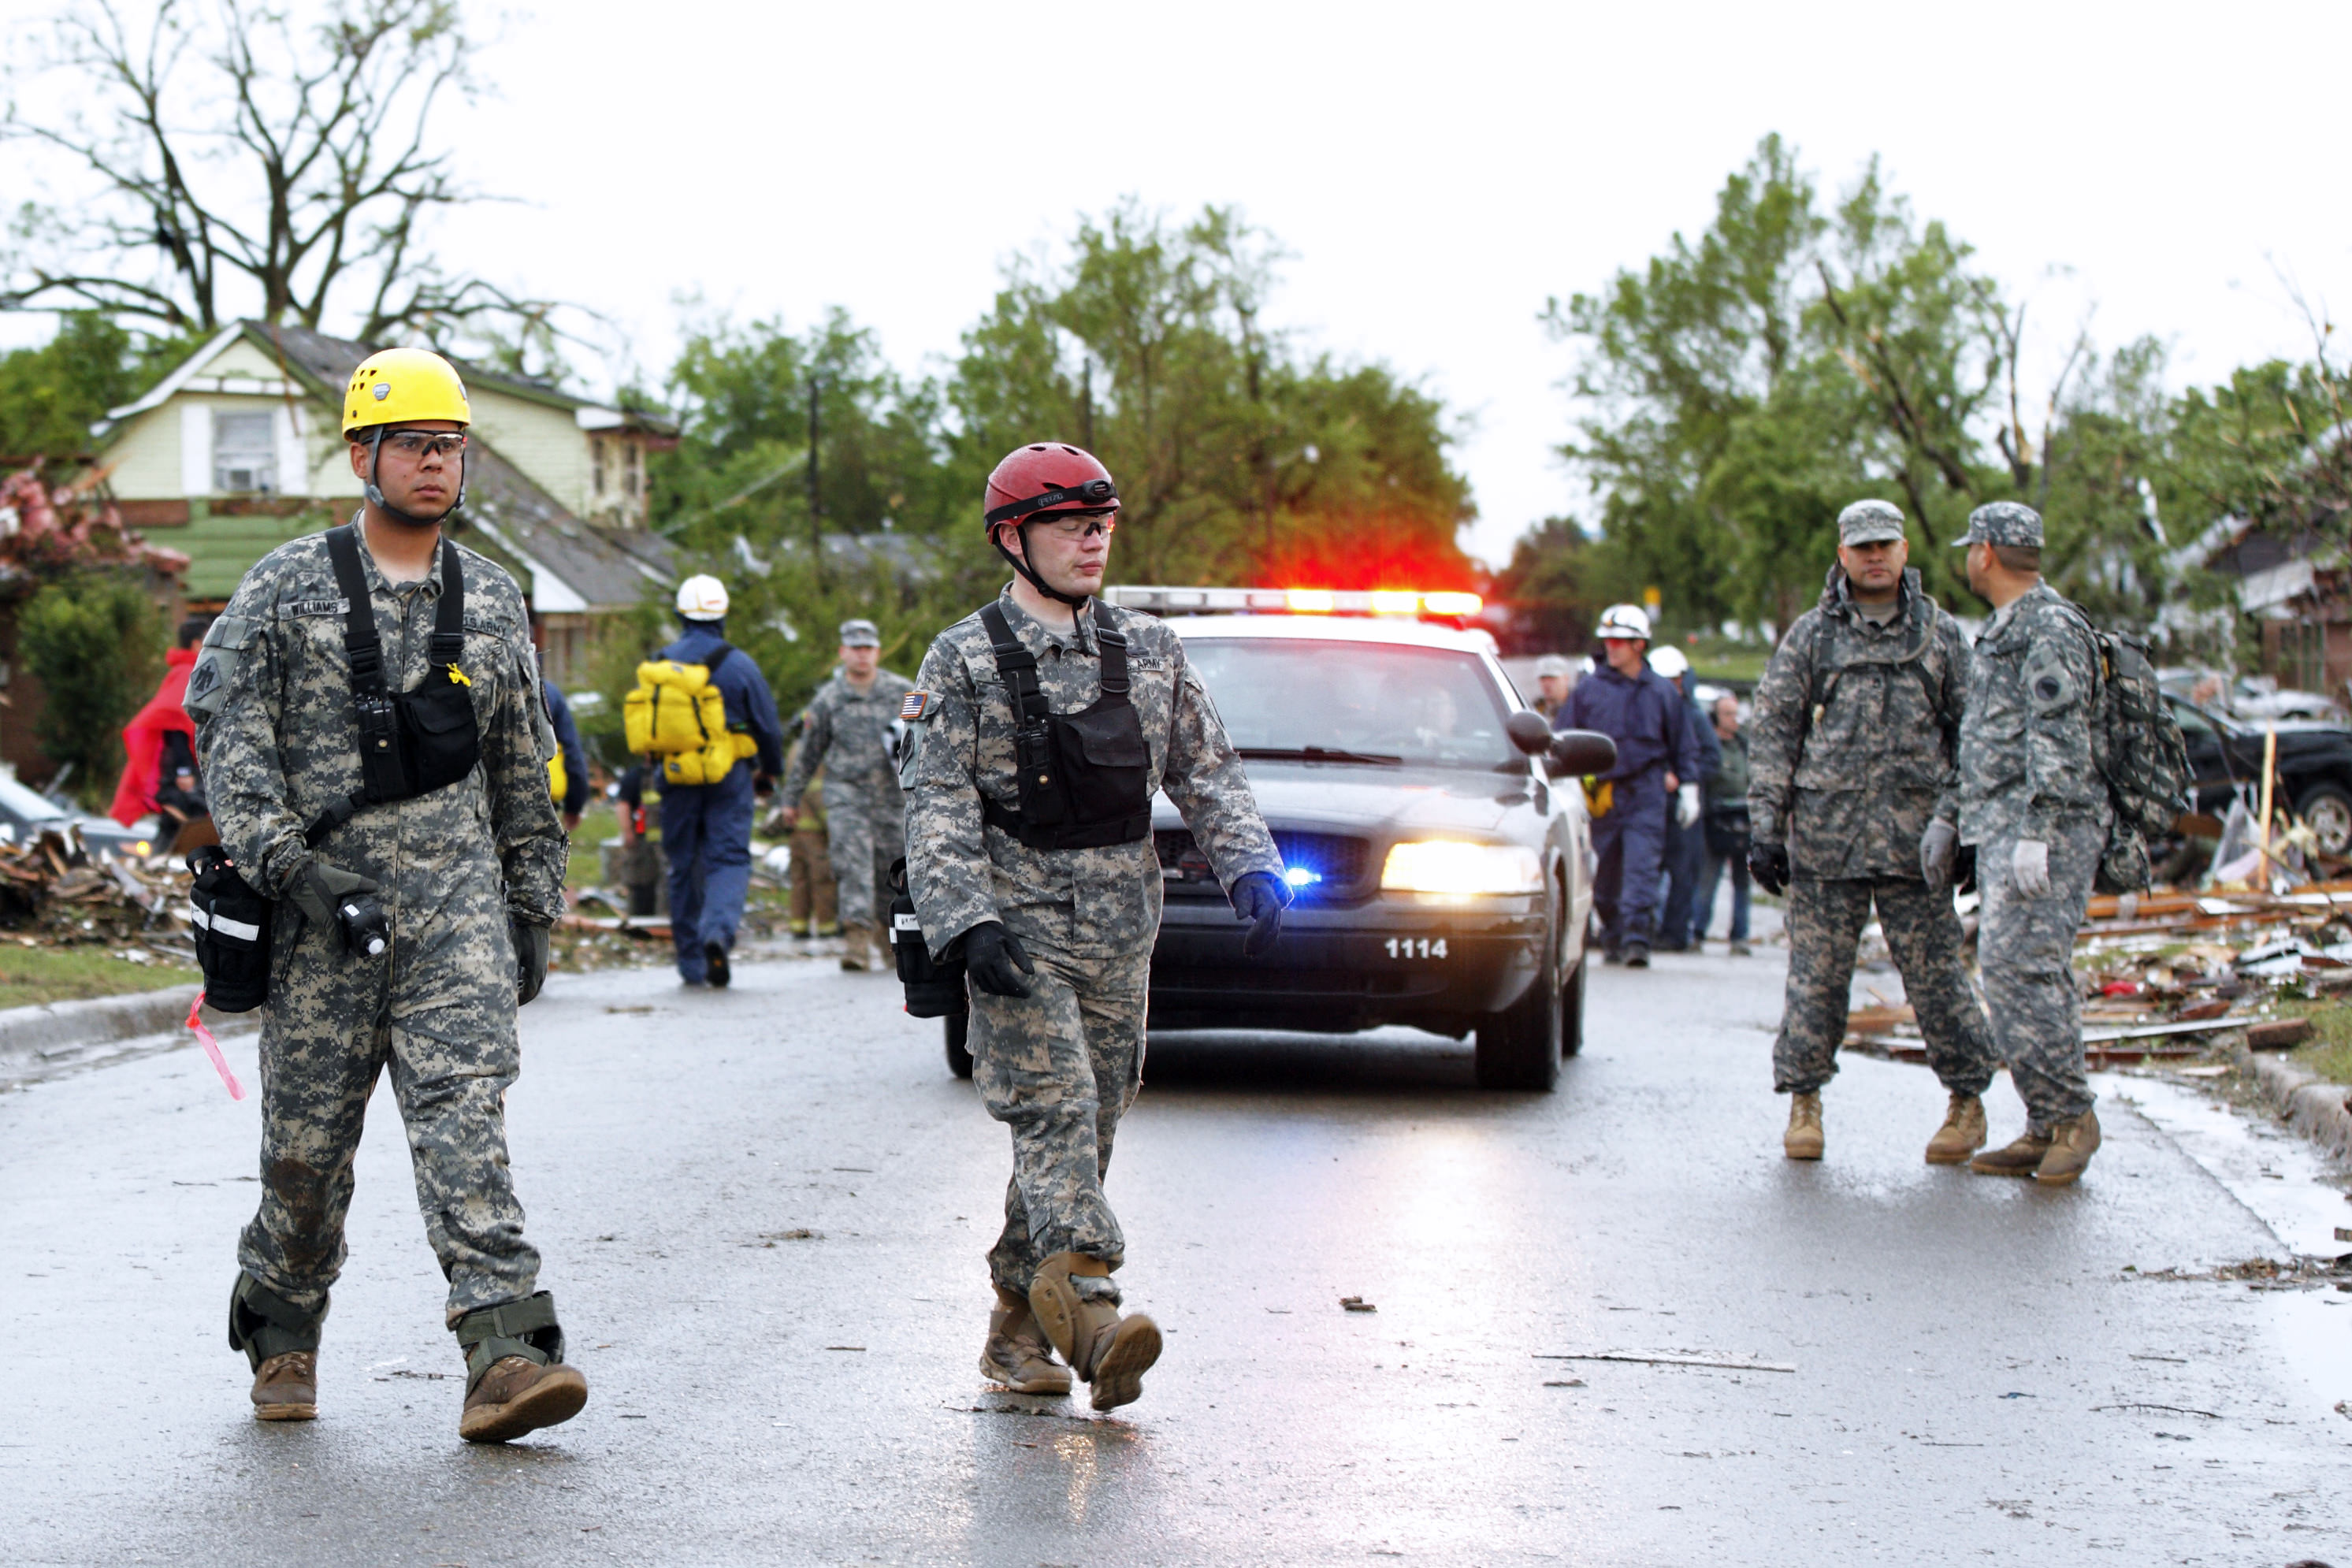 national guard in damaged street